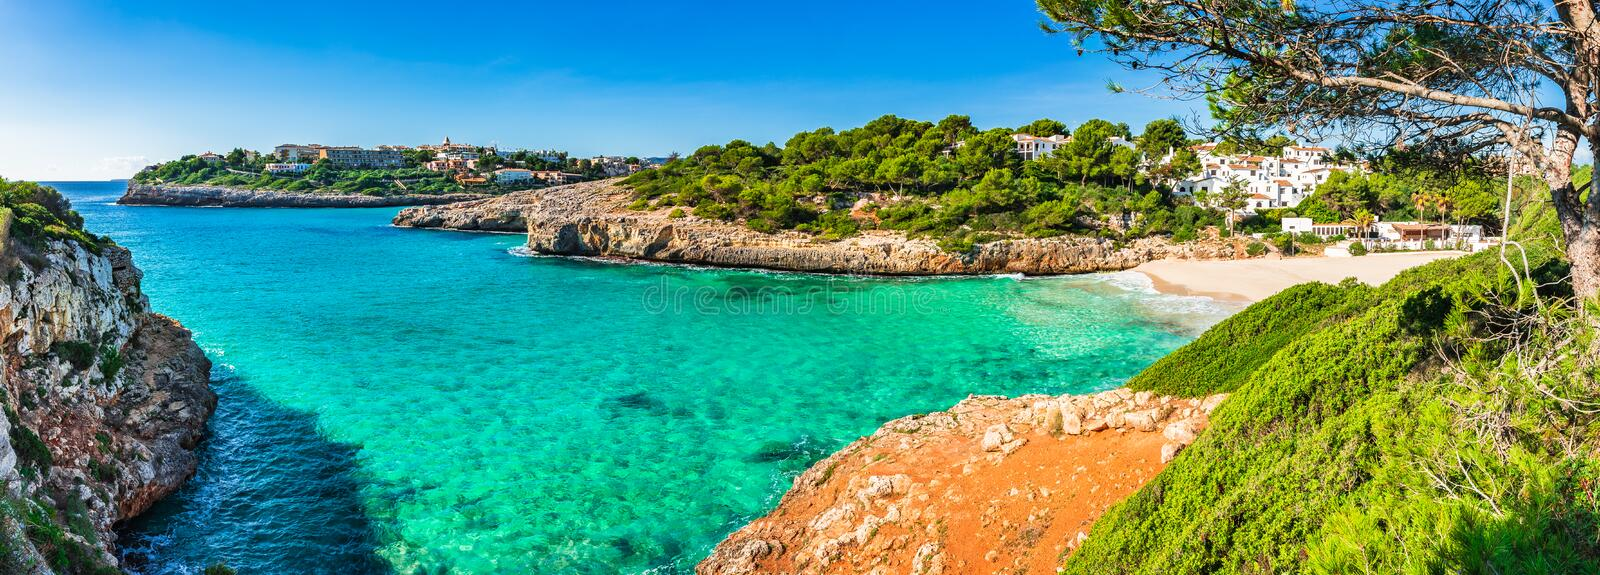 Panorama view of the coastline on Majorca Island, Spain. royalty free stock photography